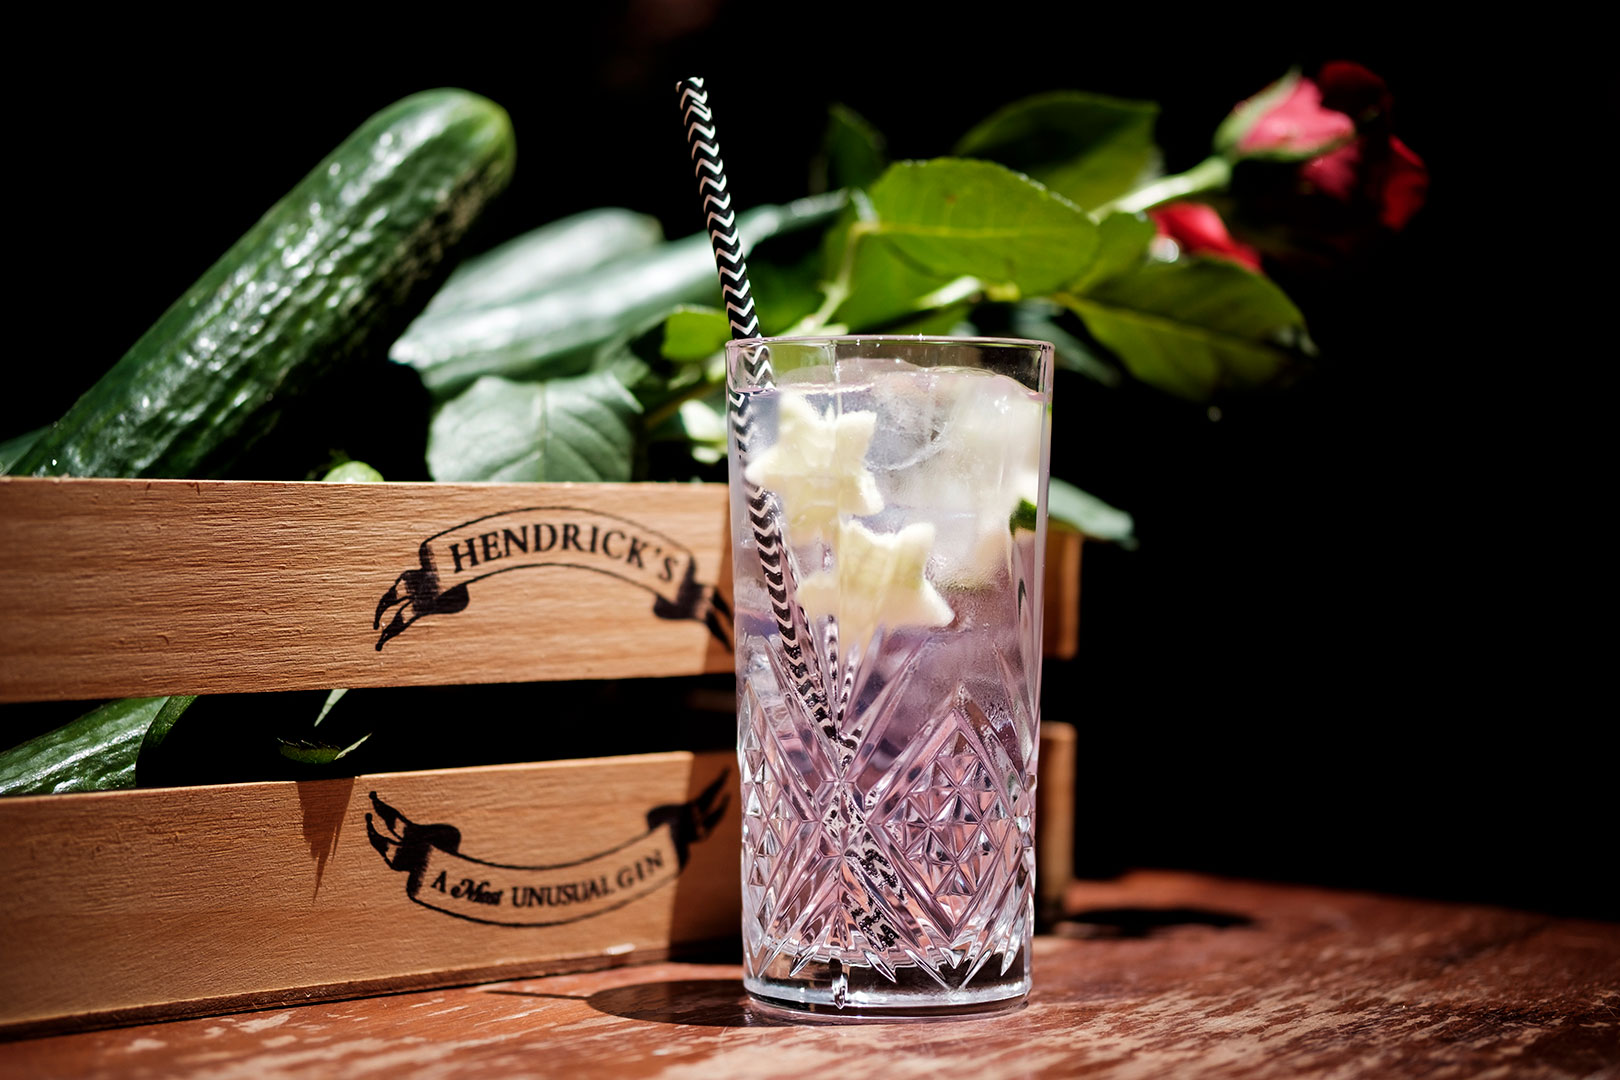 #thirstythursday Hendrick's Gin And Tonic Rose And Cucumber photo